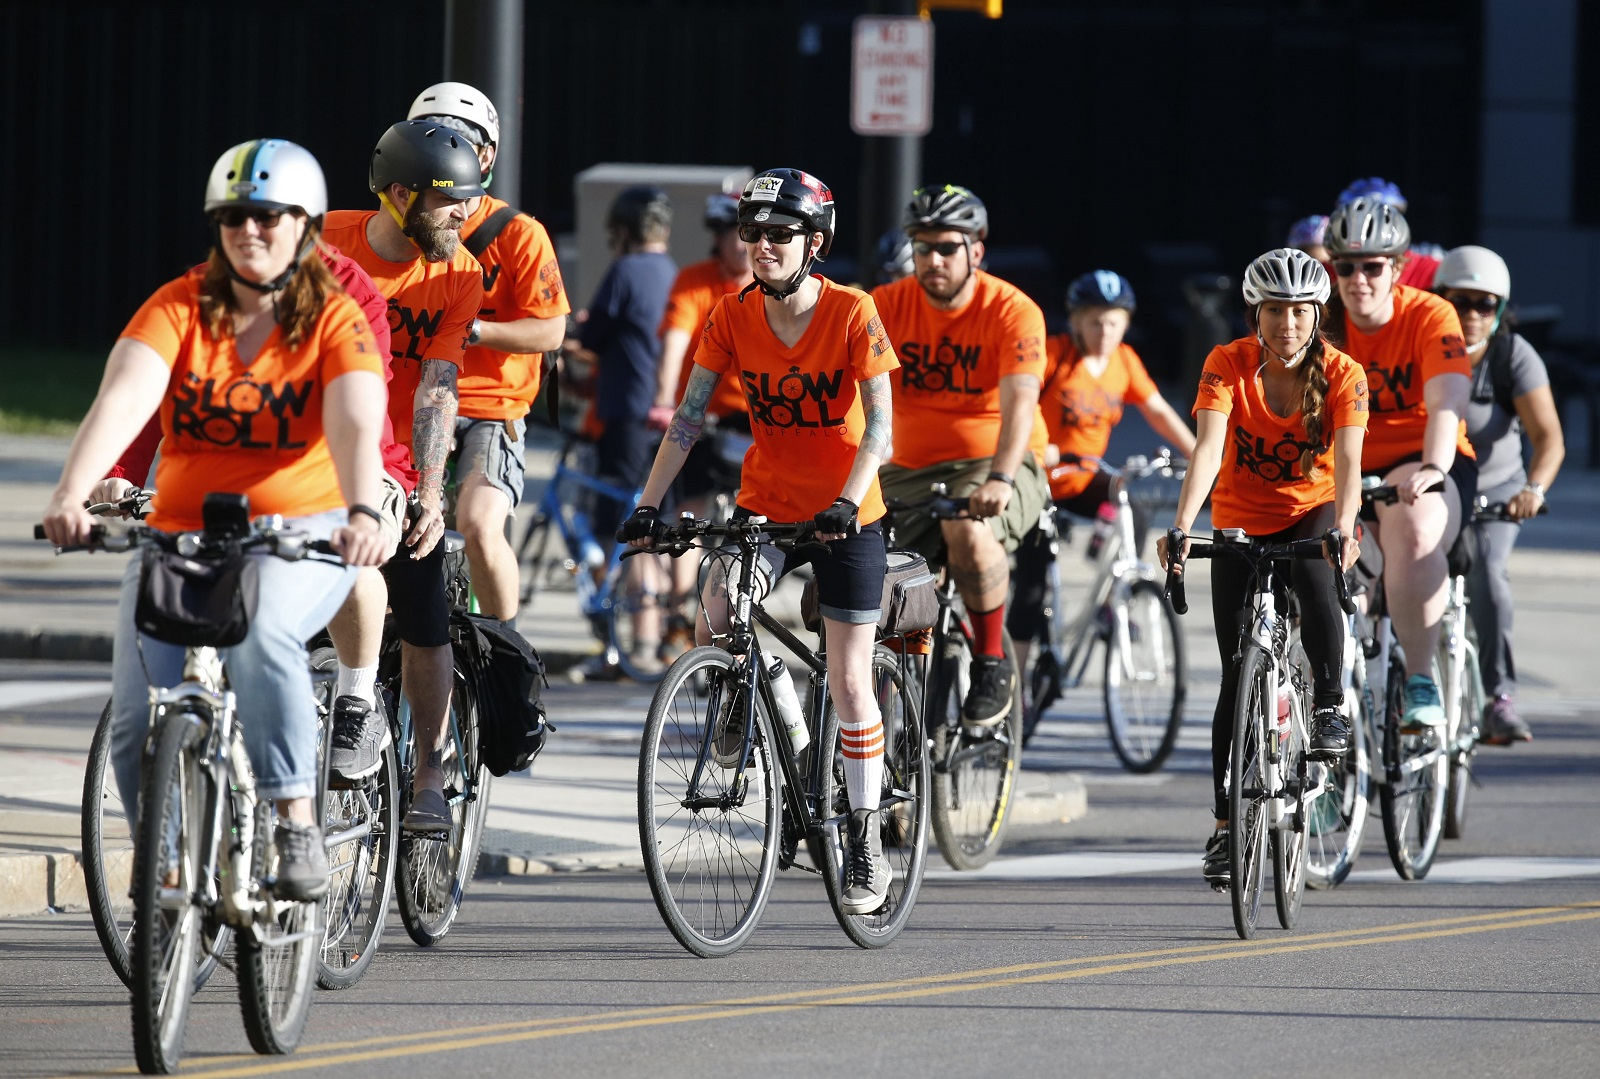 Slow Roll Buffalo cranks up its fourth season at 6:30 p.m. Monday outside the Electric Tower downtown. An after-party at nearby Big Ditch Brewing Company will follow. (Harry Scull Jr./News file photo)